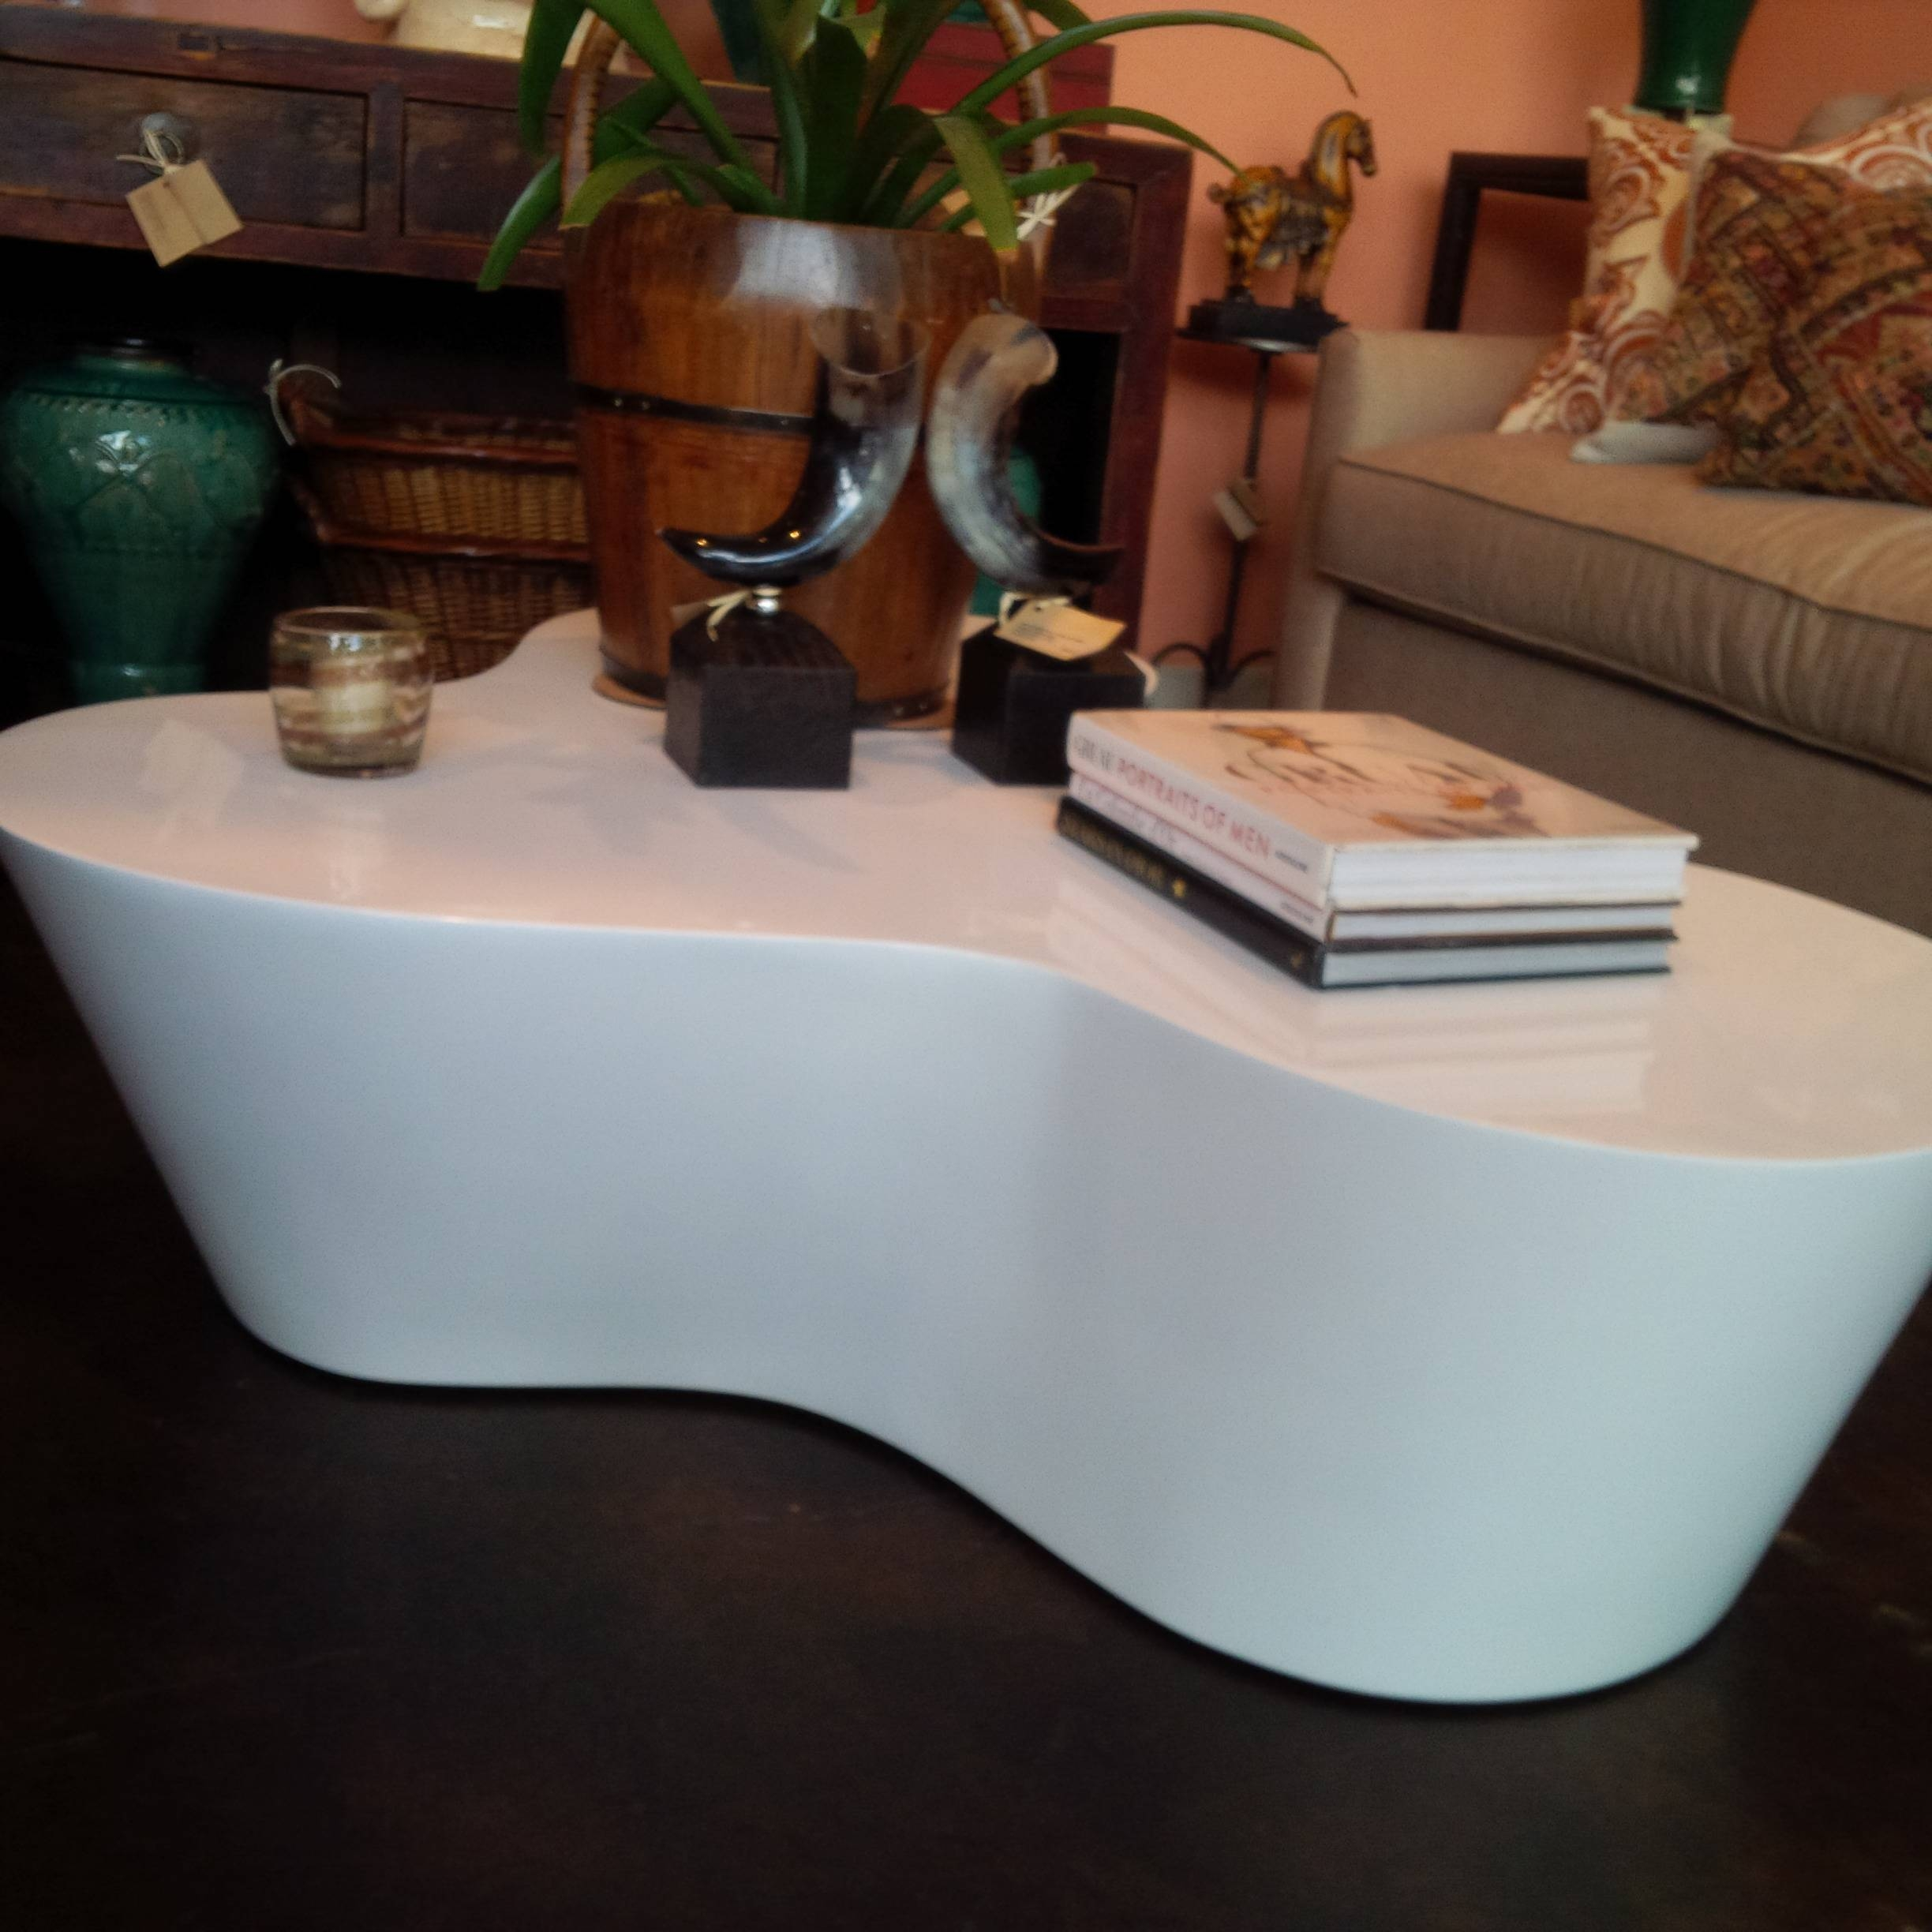 Organic Shaped White Lacquer Coffee Table - Mecox Gardens with regard to Lacquer Coffee Tables (Image 24 of 30)